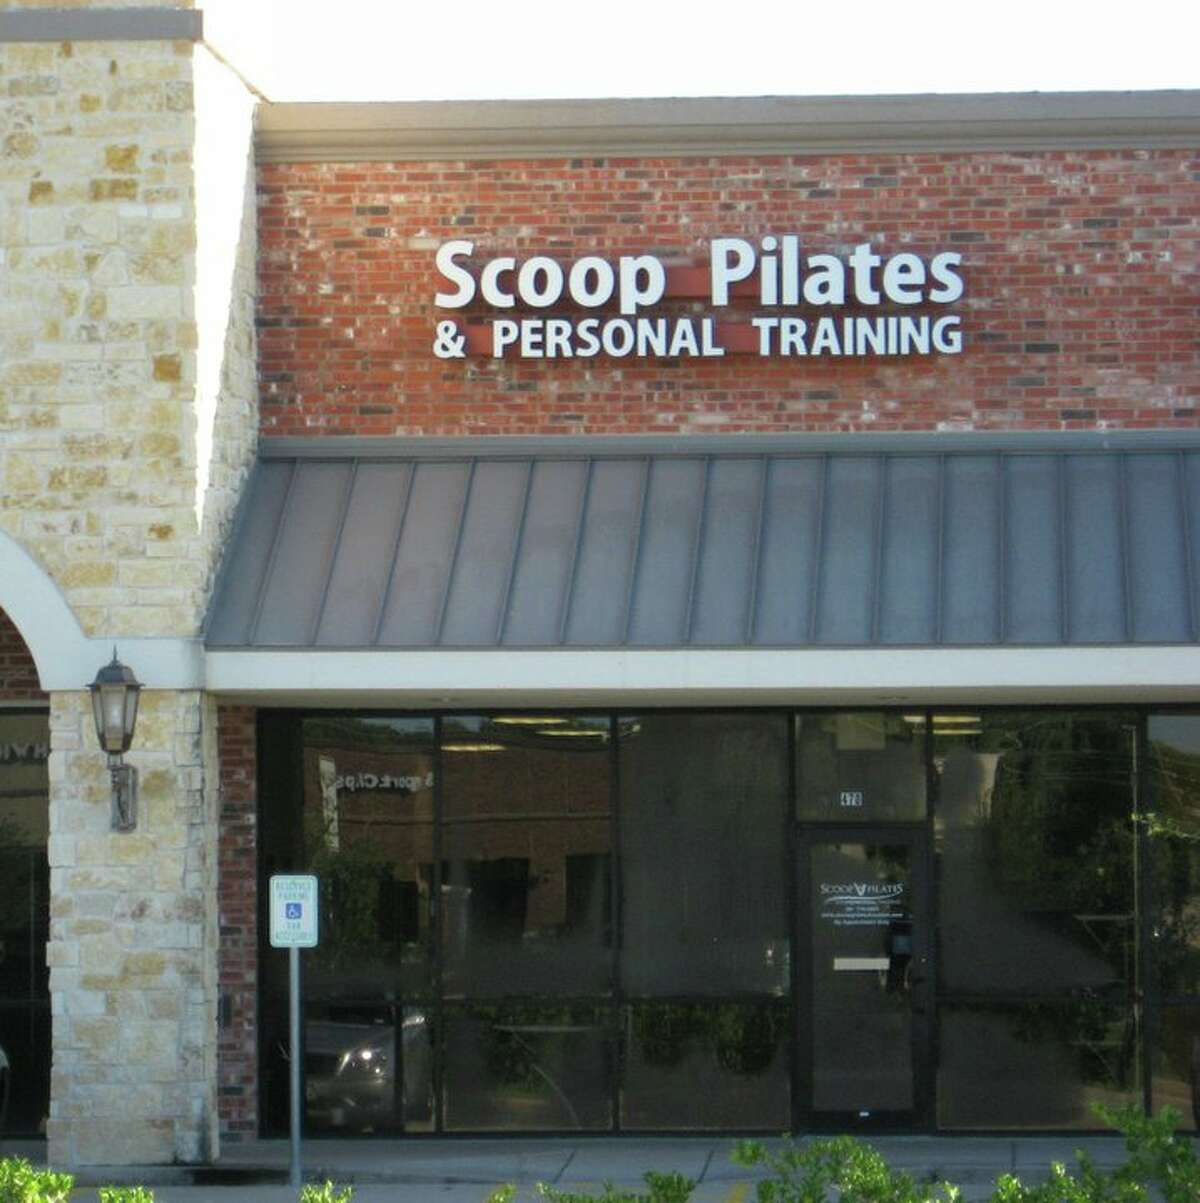 Scoop Pilates & Personal Training Rating: 5 stars Address: 8817 Hwy 6 Ste 470, Missouri City, TX 77459 Phone Number: (281) 778-6801 Website: scooppilateshouston.com